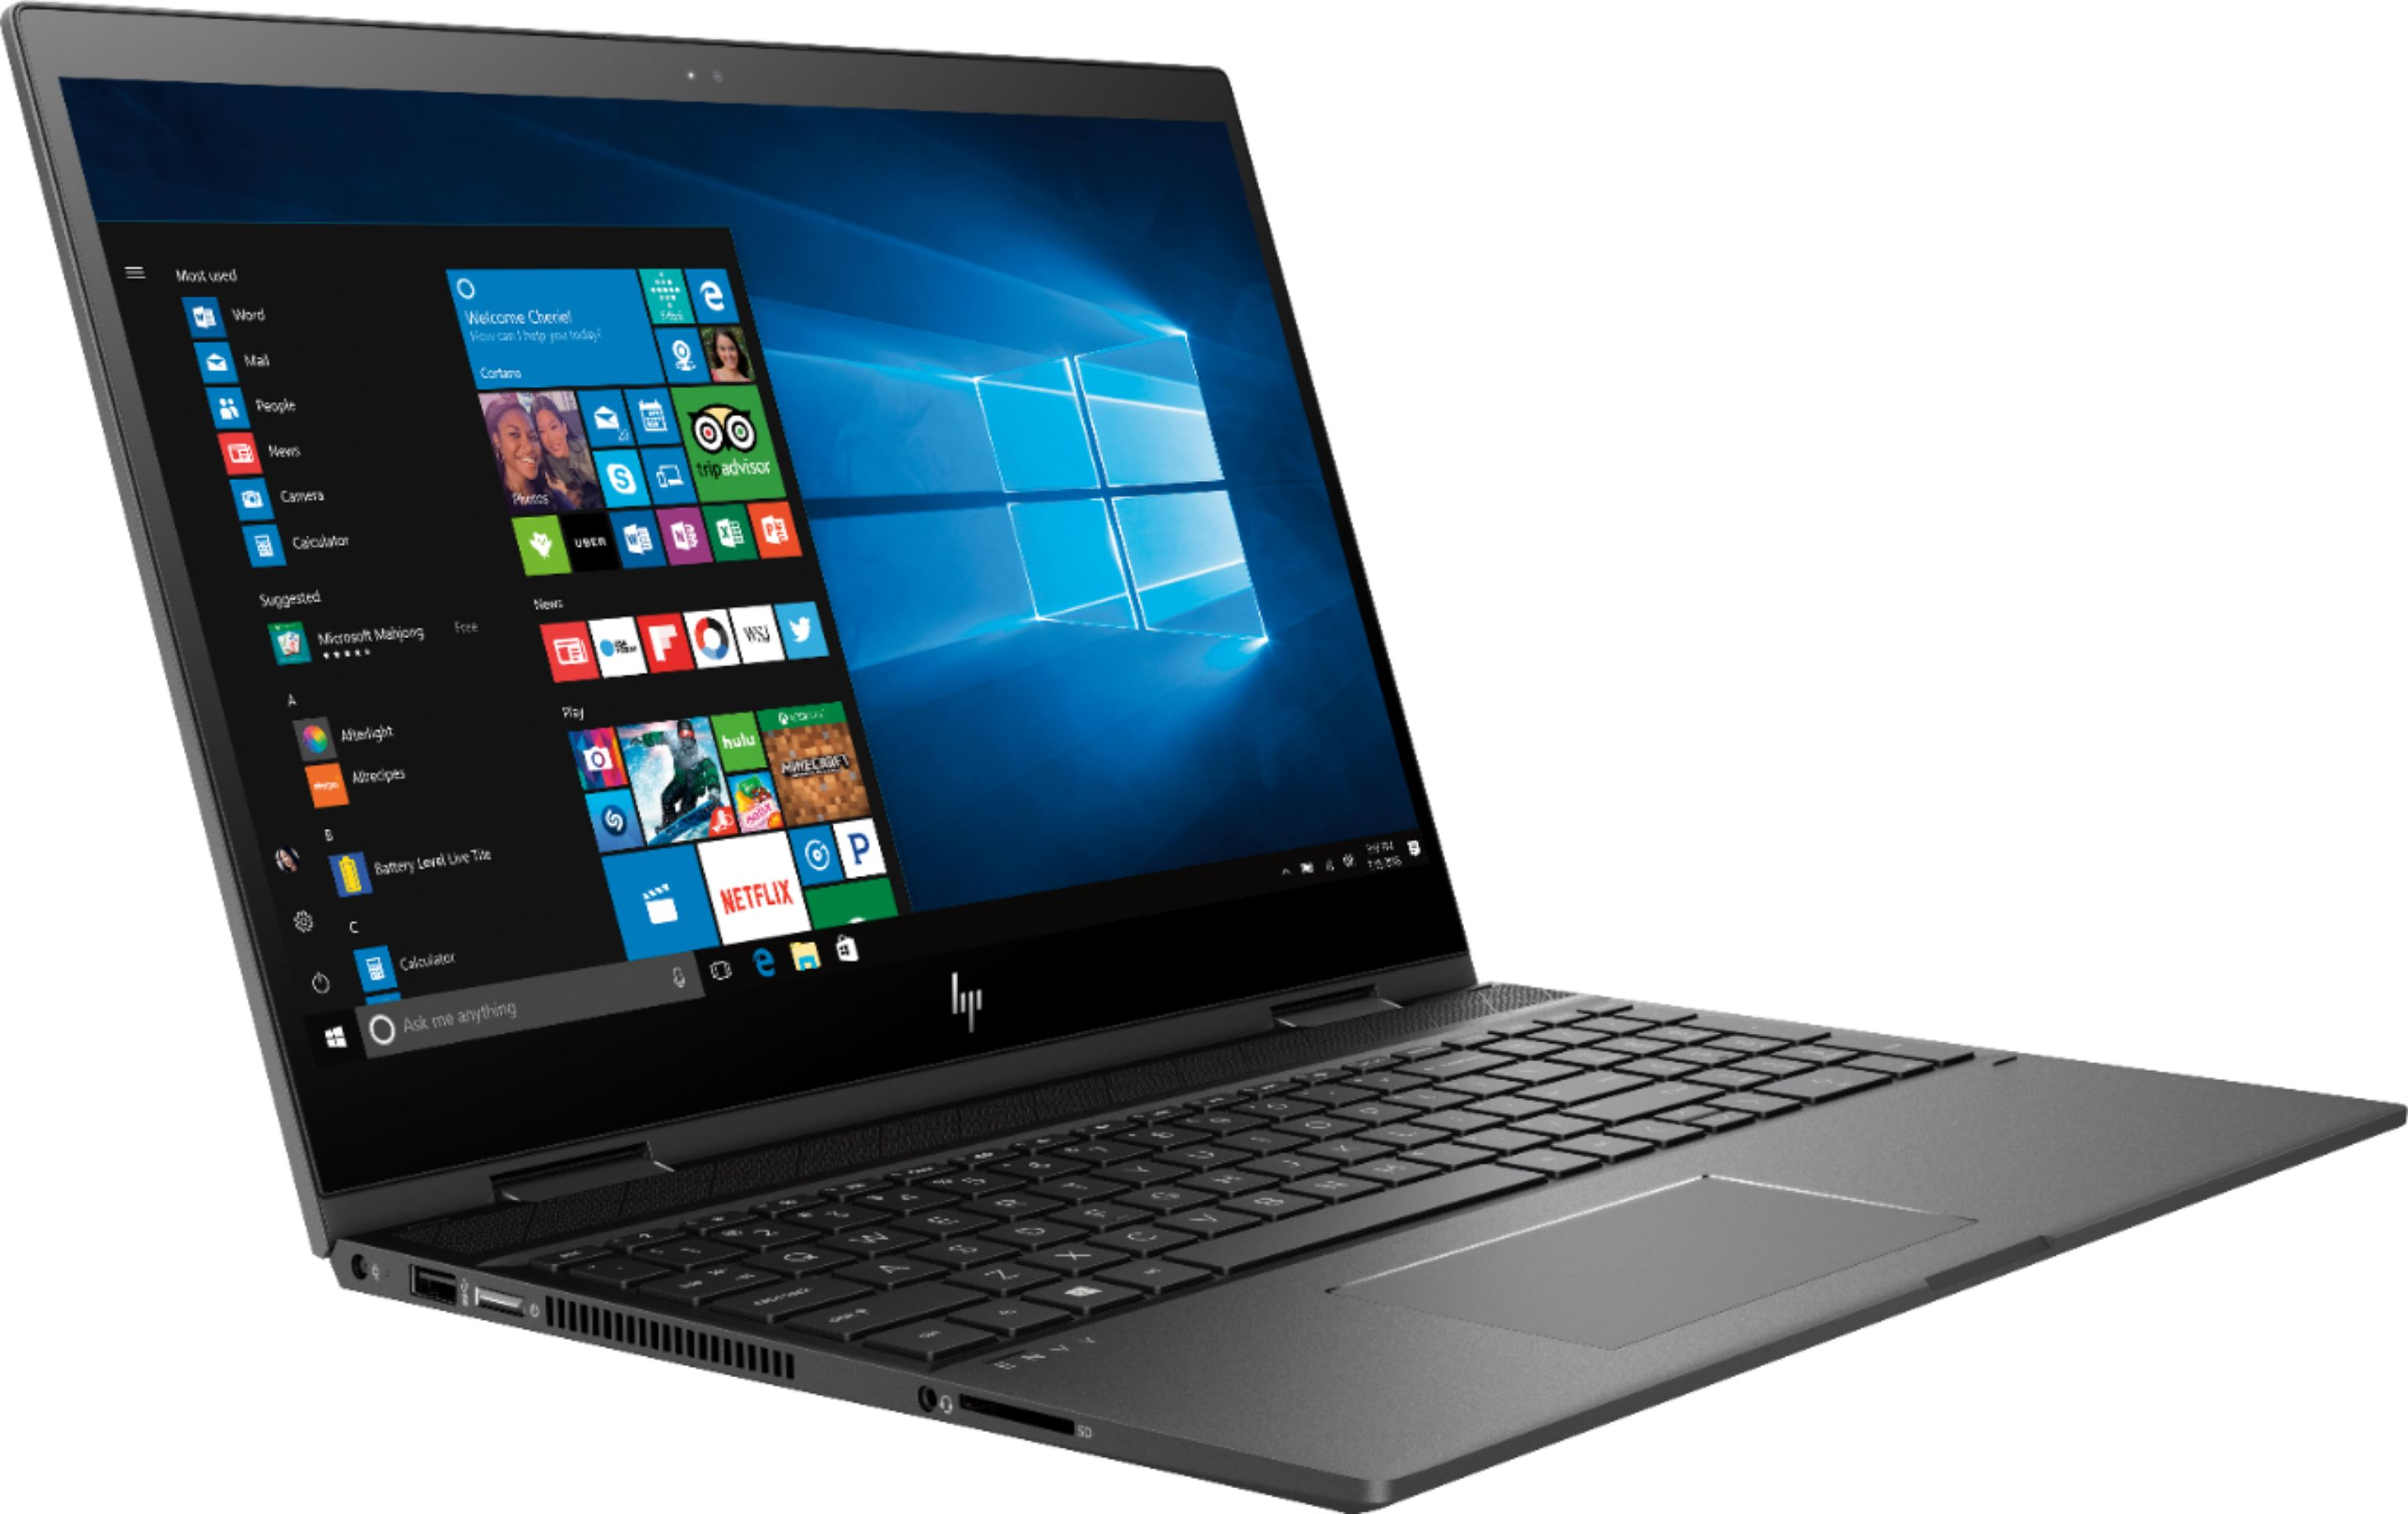 The HP Envy x360 Laptop is the MUST HAVE laptop this year $100 Off @HP, #Windows, @BestBuy, #ad